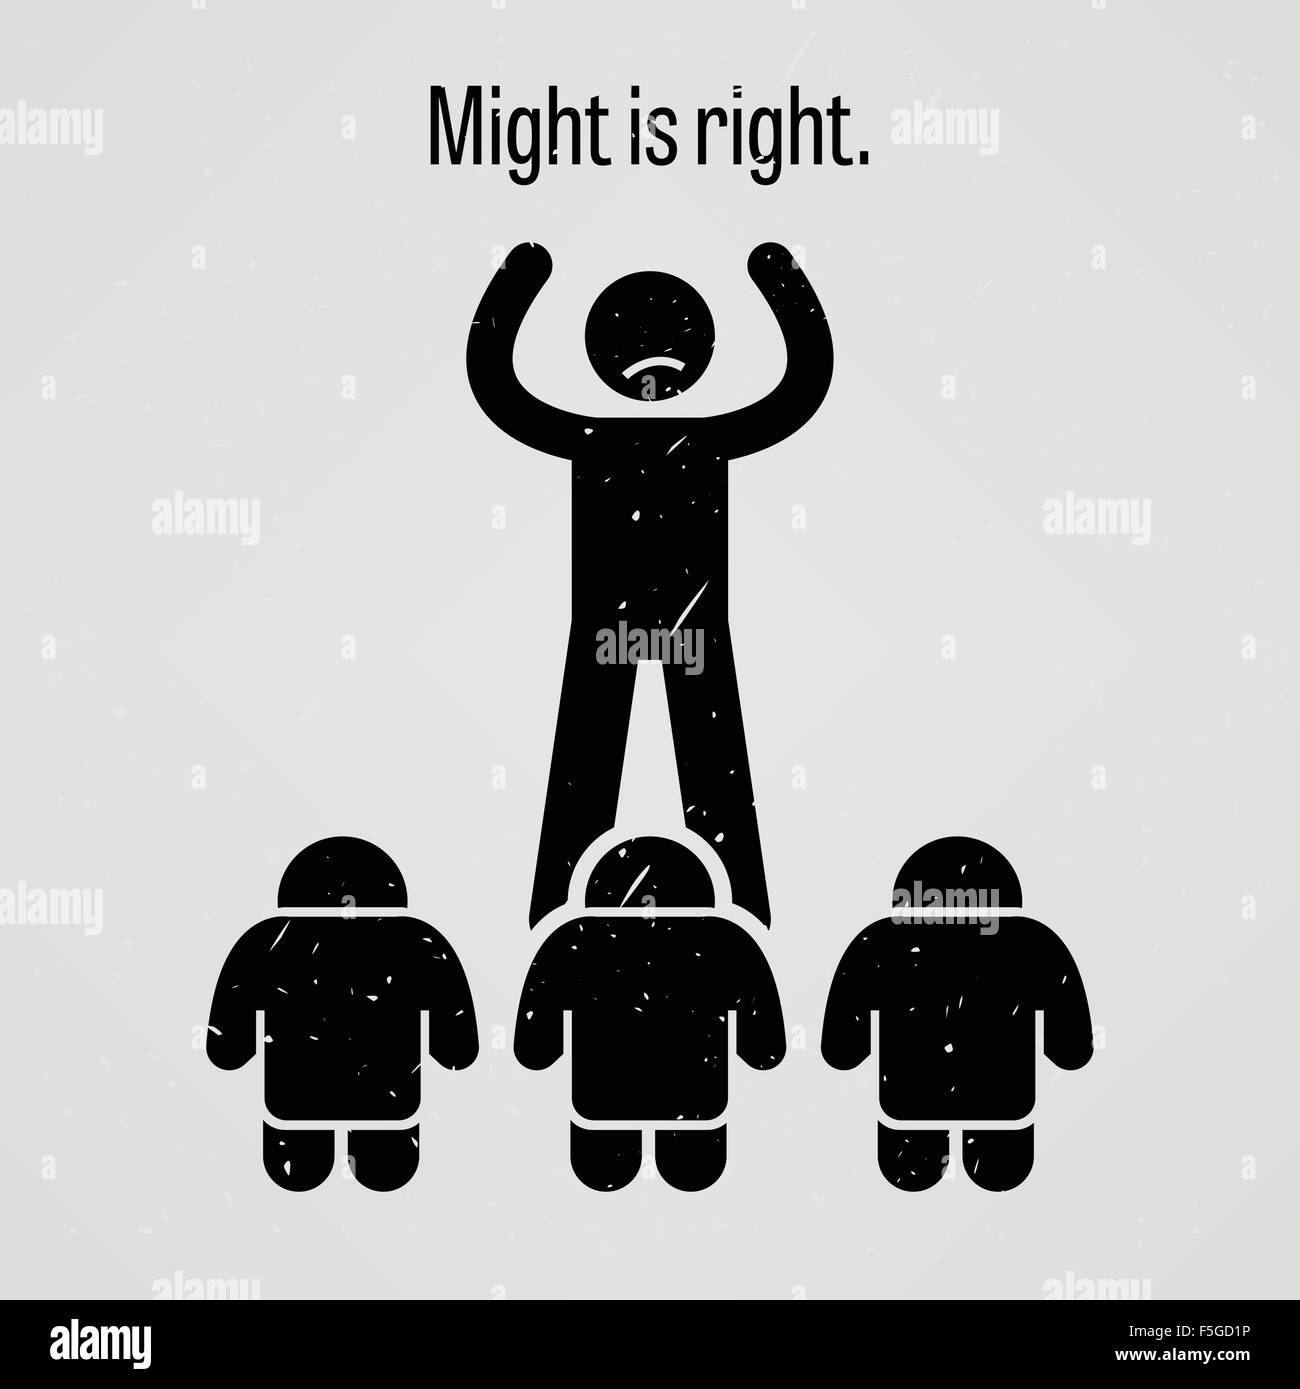 Might is Right - Stock Vector